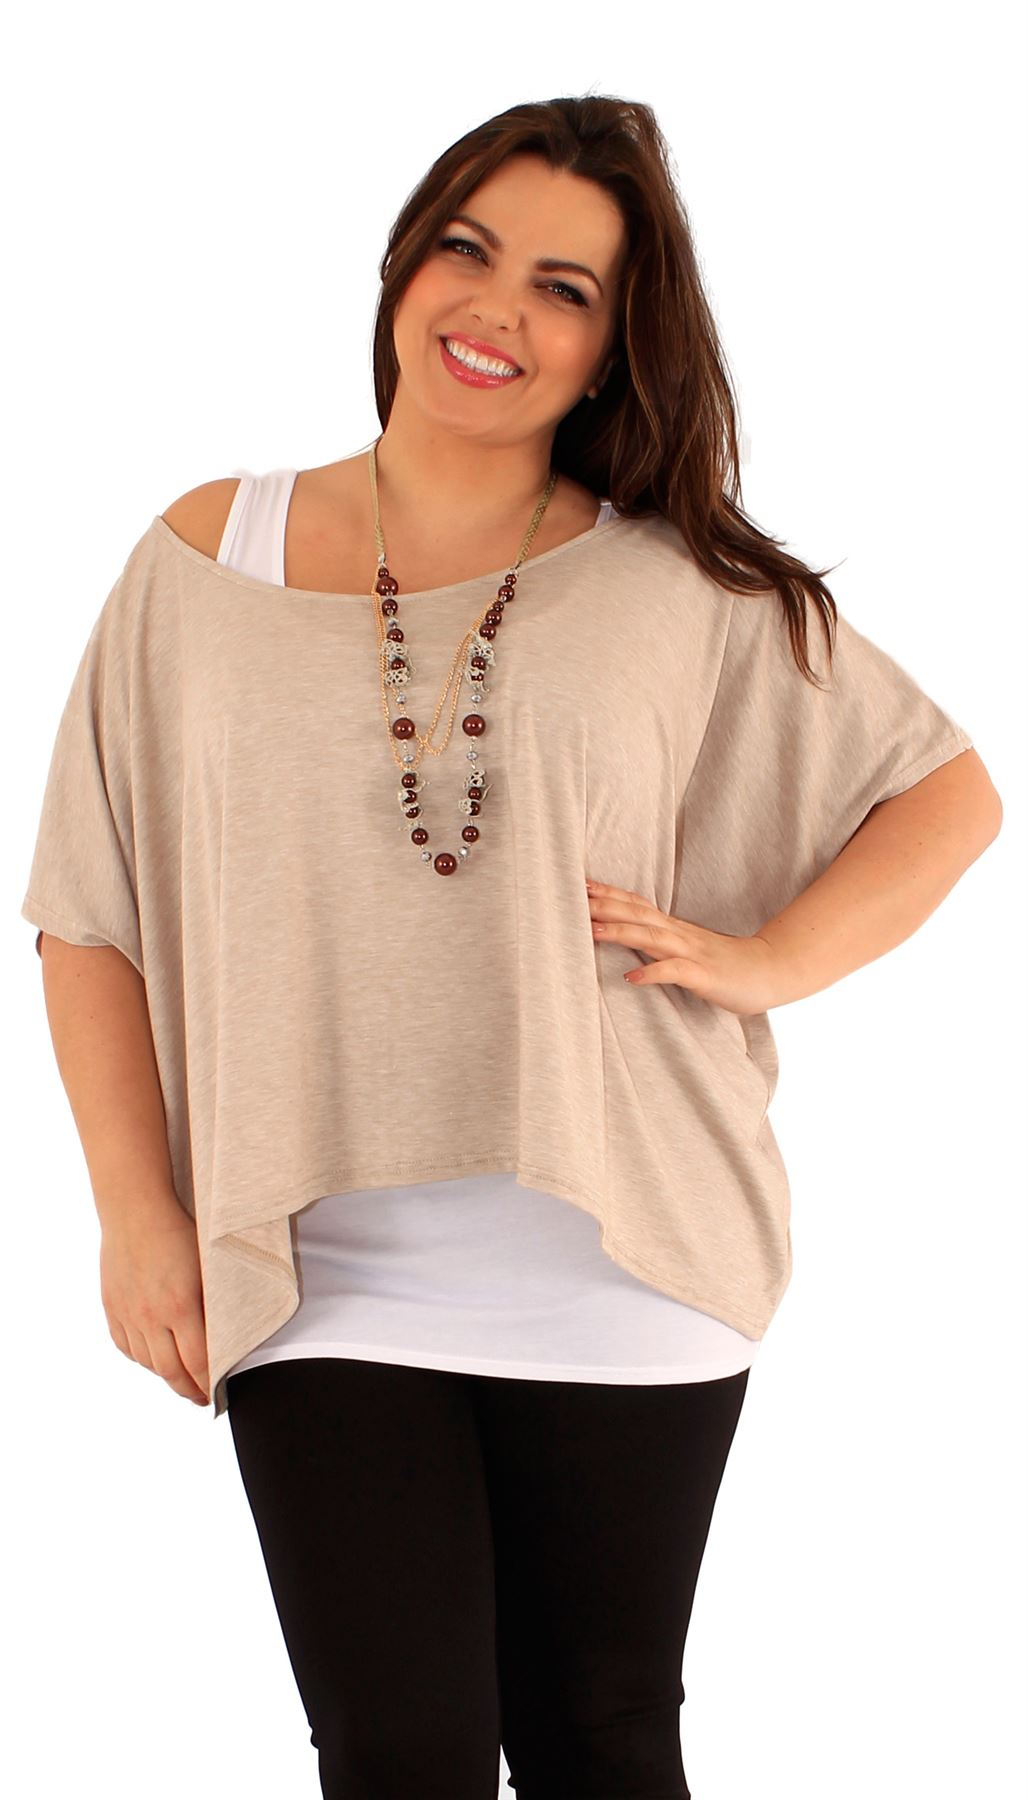 Shop dressbarn for the latest in plus size tops. You'll discover on trend styles in a variety of patterns and prints that can be worn for any occasion. Add some extra flair to your weekend or workwear wardrobe with plus size tops.